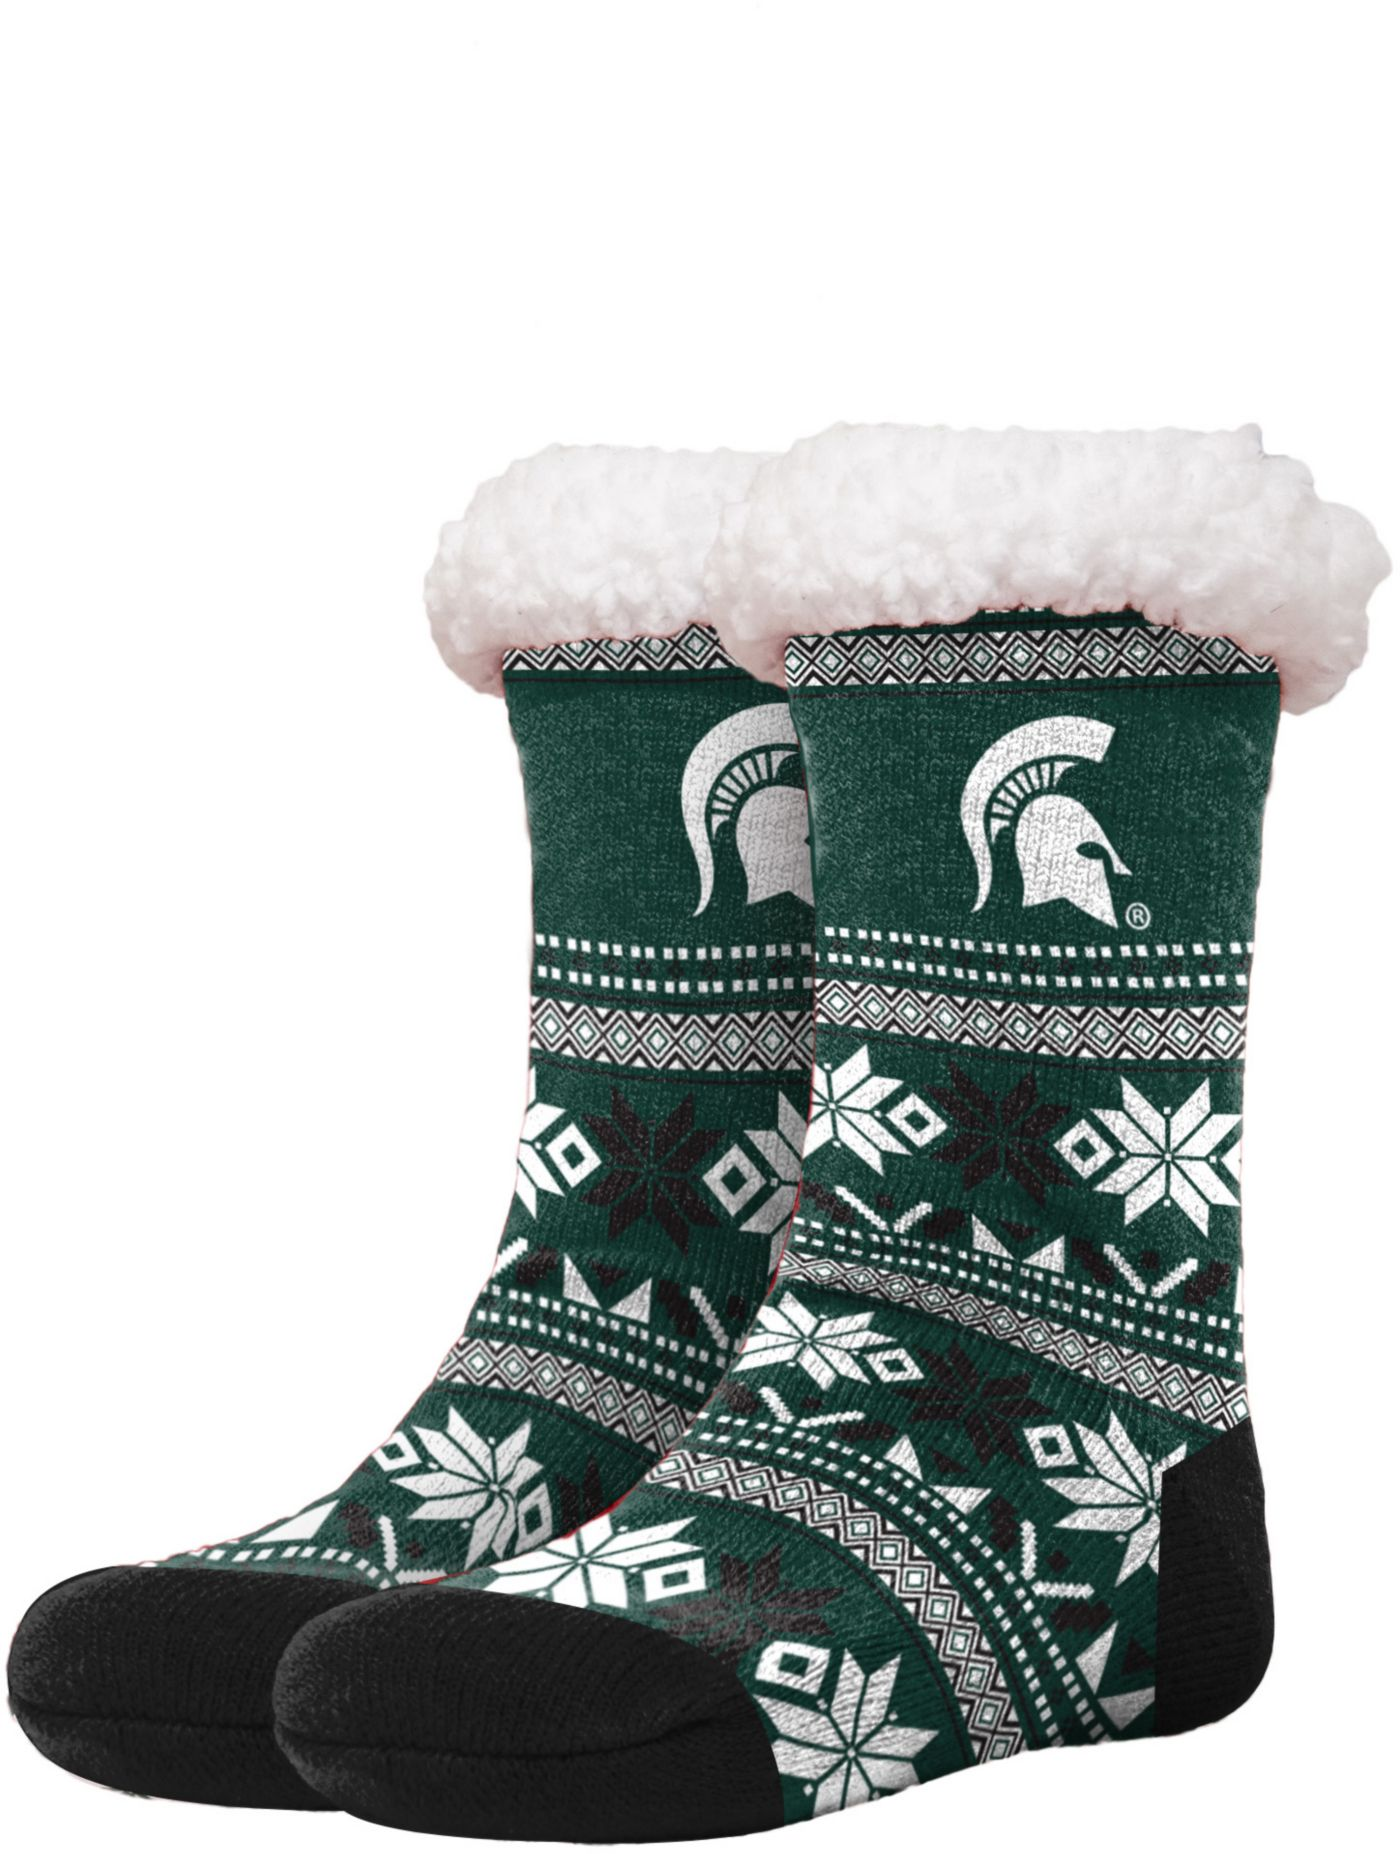 FOCO Michigan State Spartans Footy Slippers